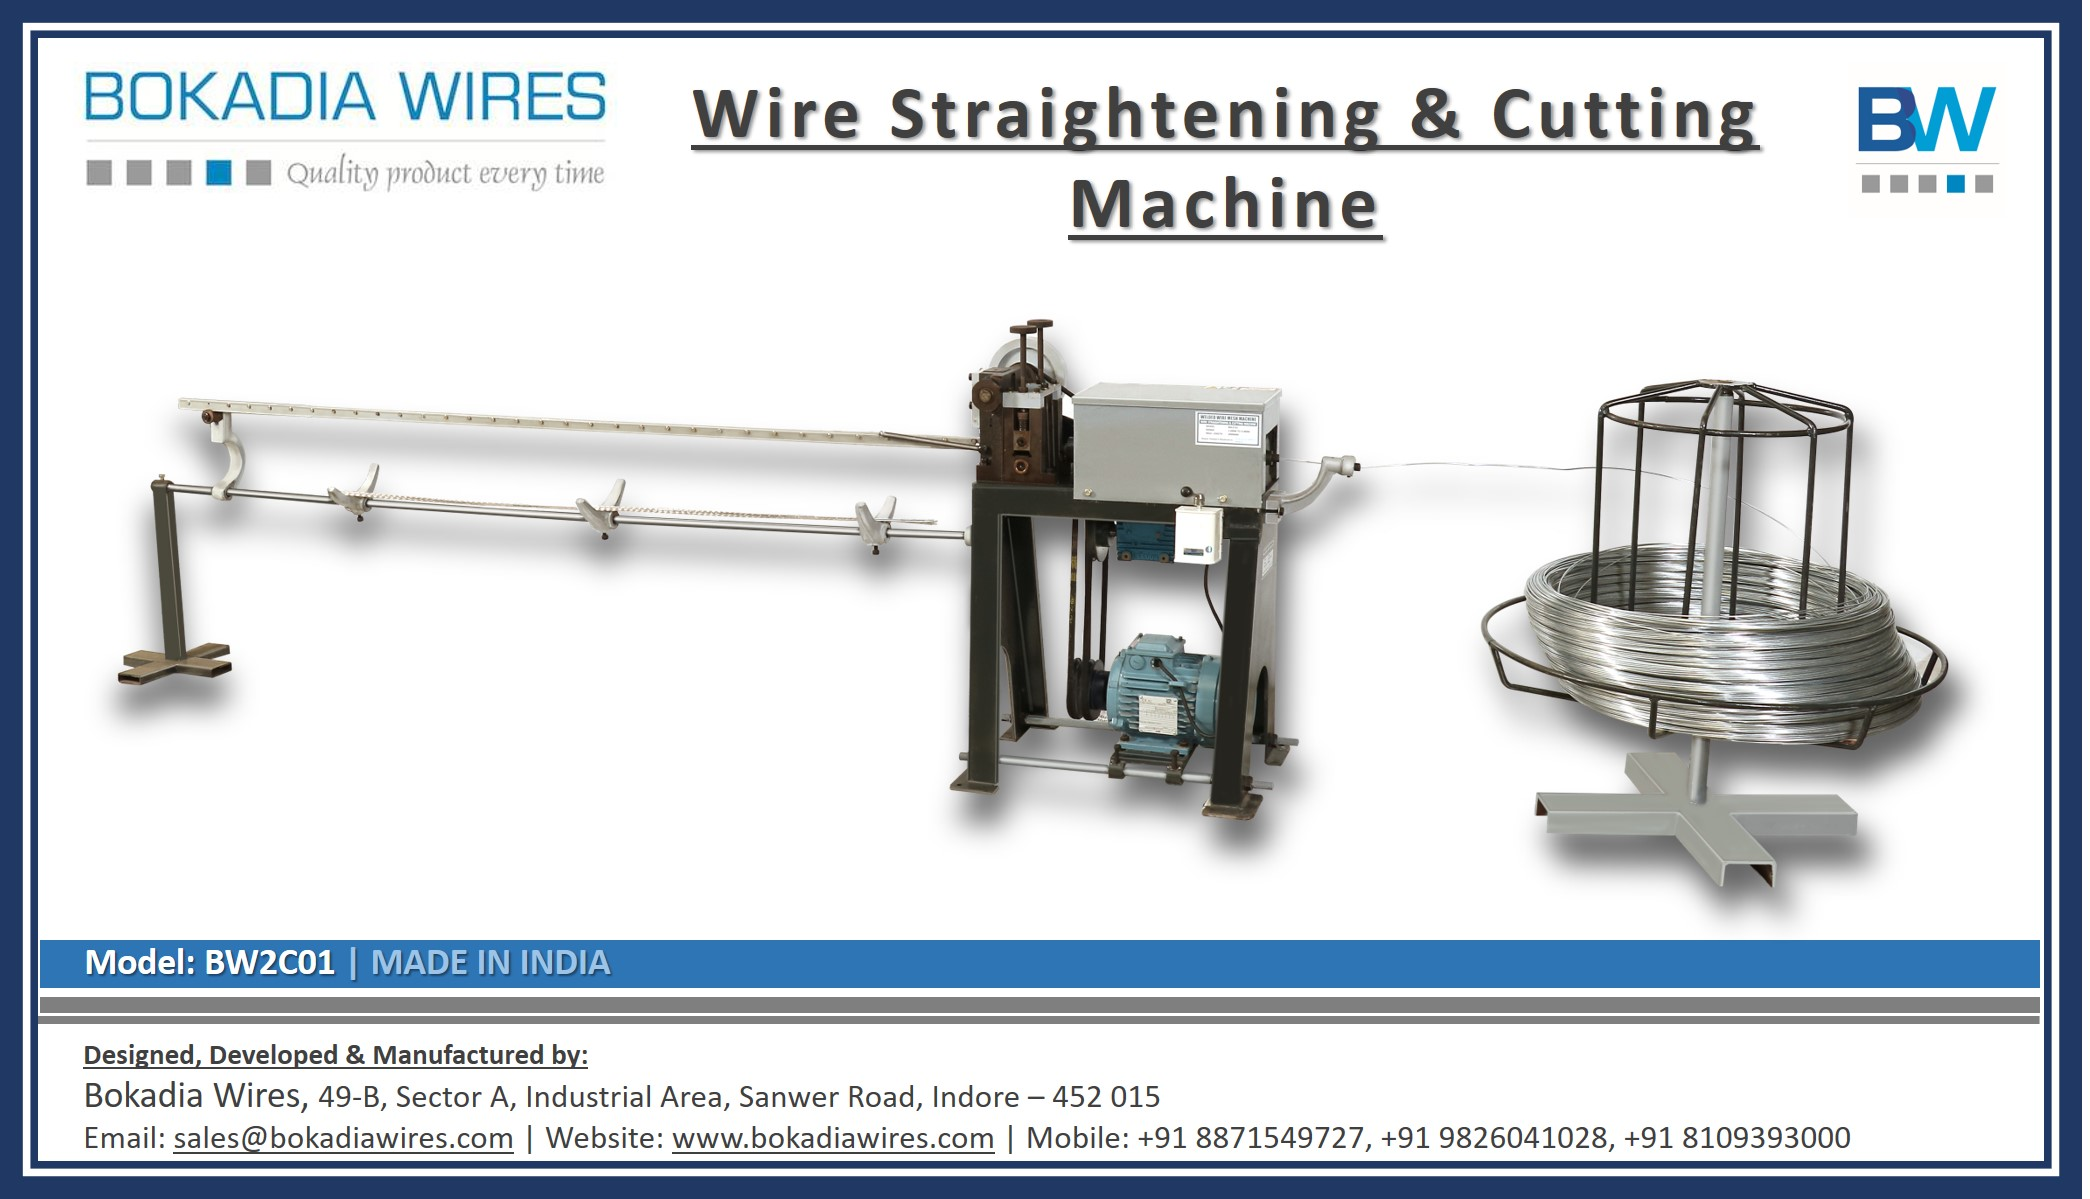 Wire Straightening & Cutting Machine (Model: BW2C01)